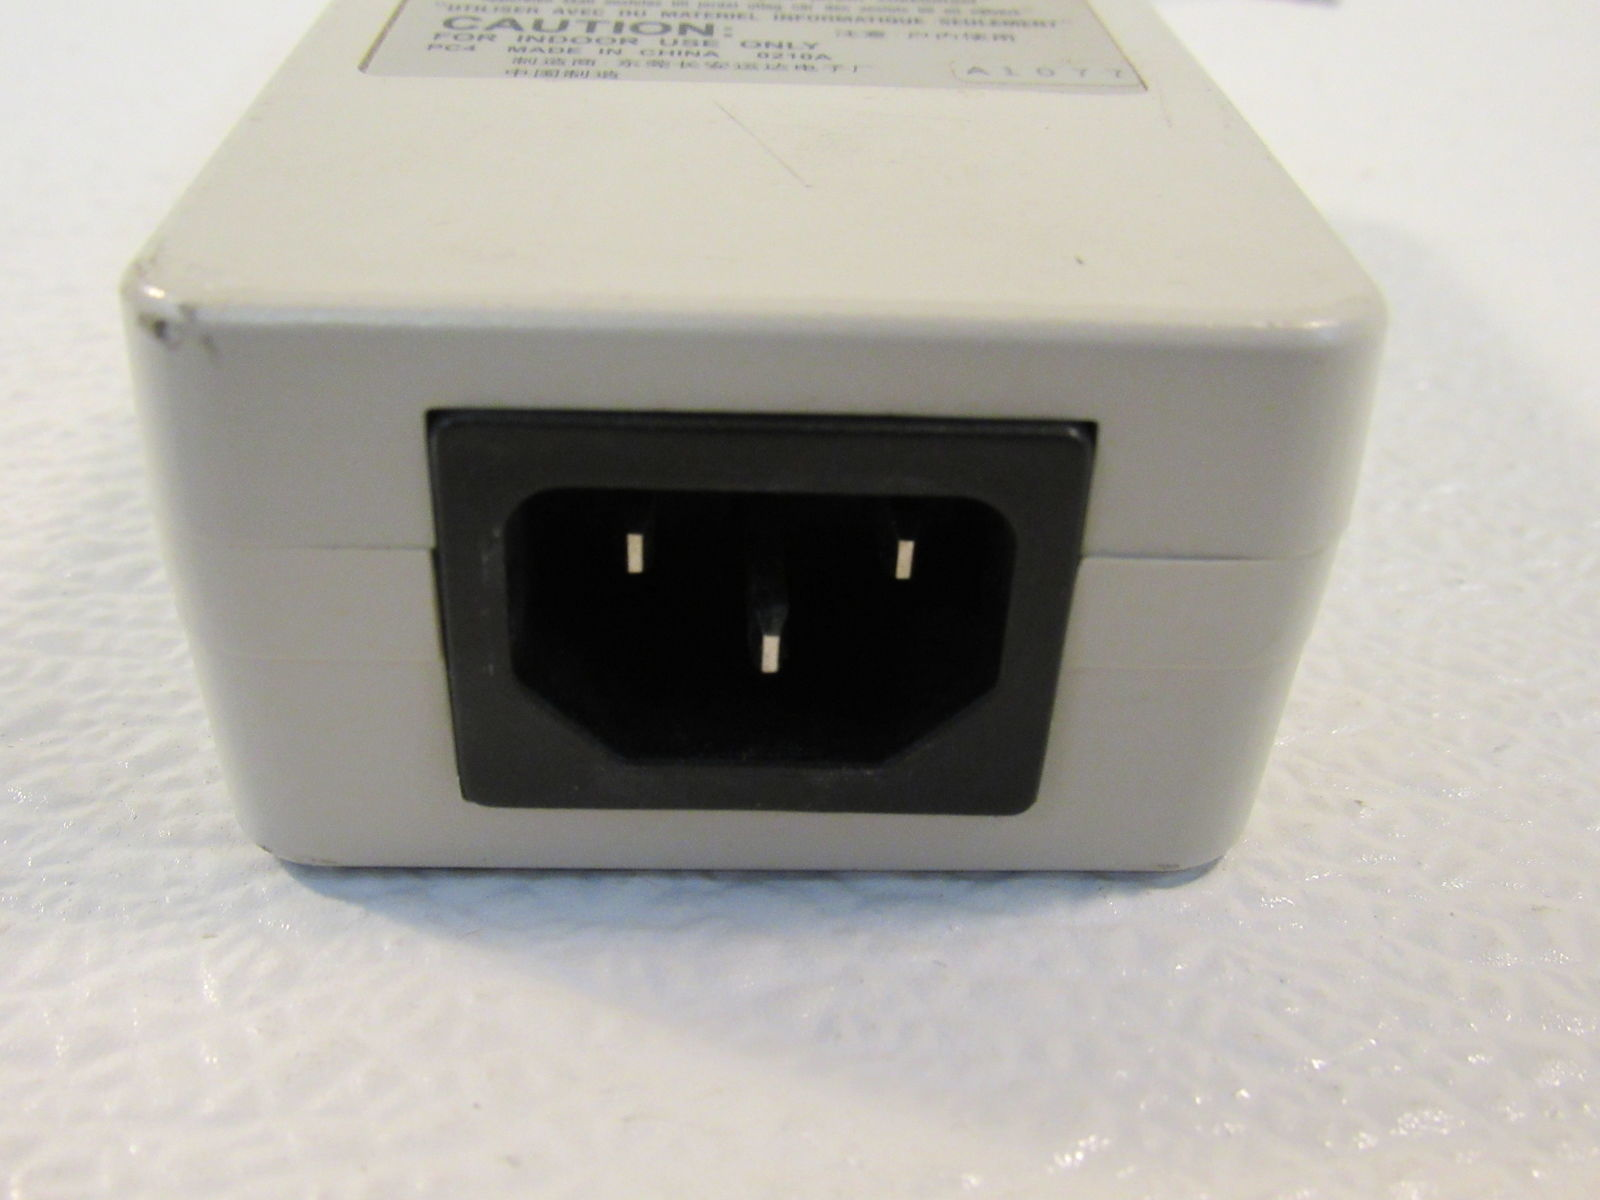 Potrans Power Adapter Supply For Monitor Output 12V 3.8A UP06031120A